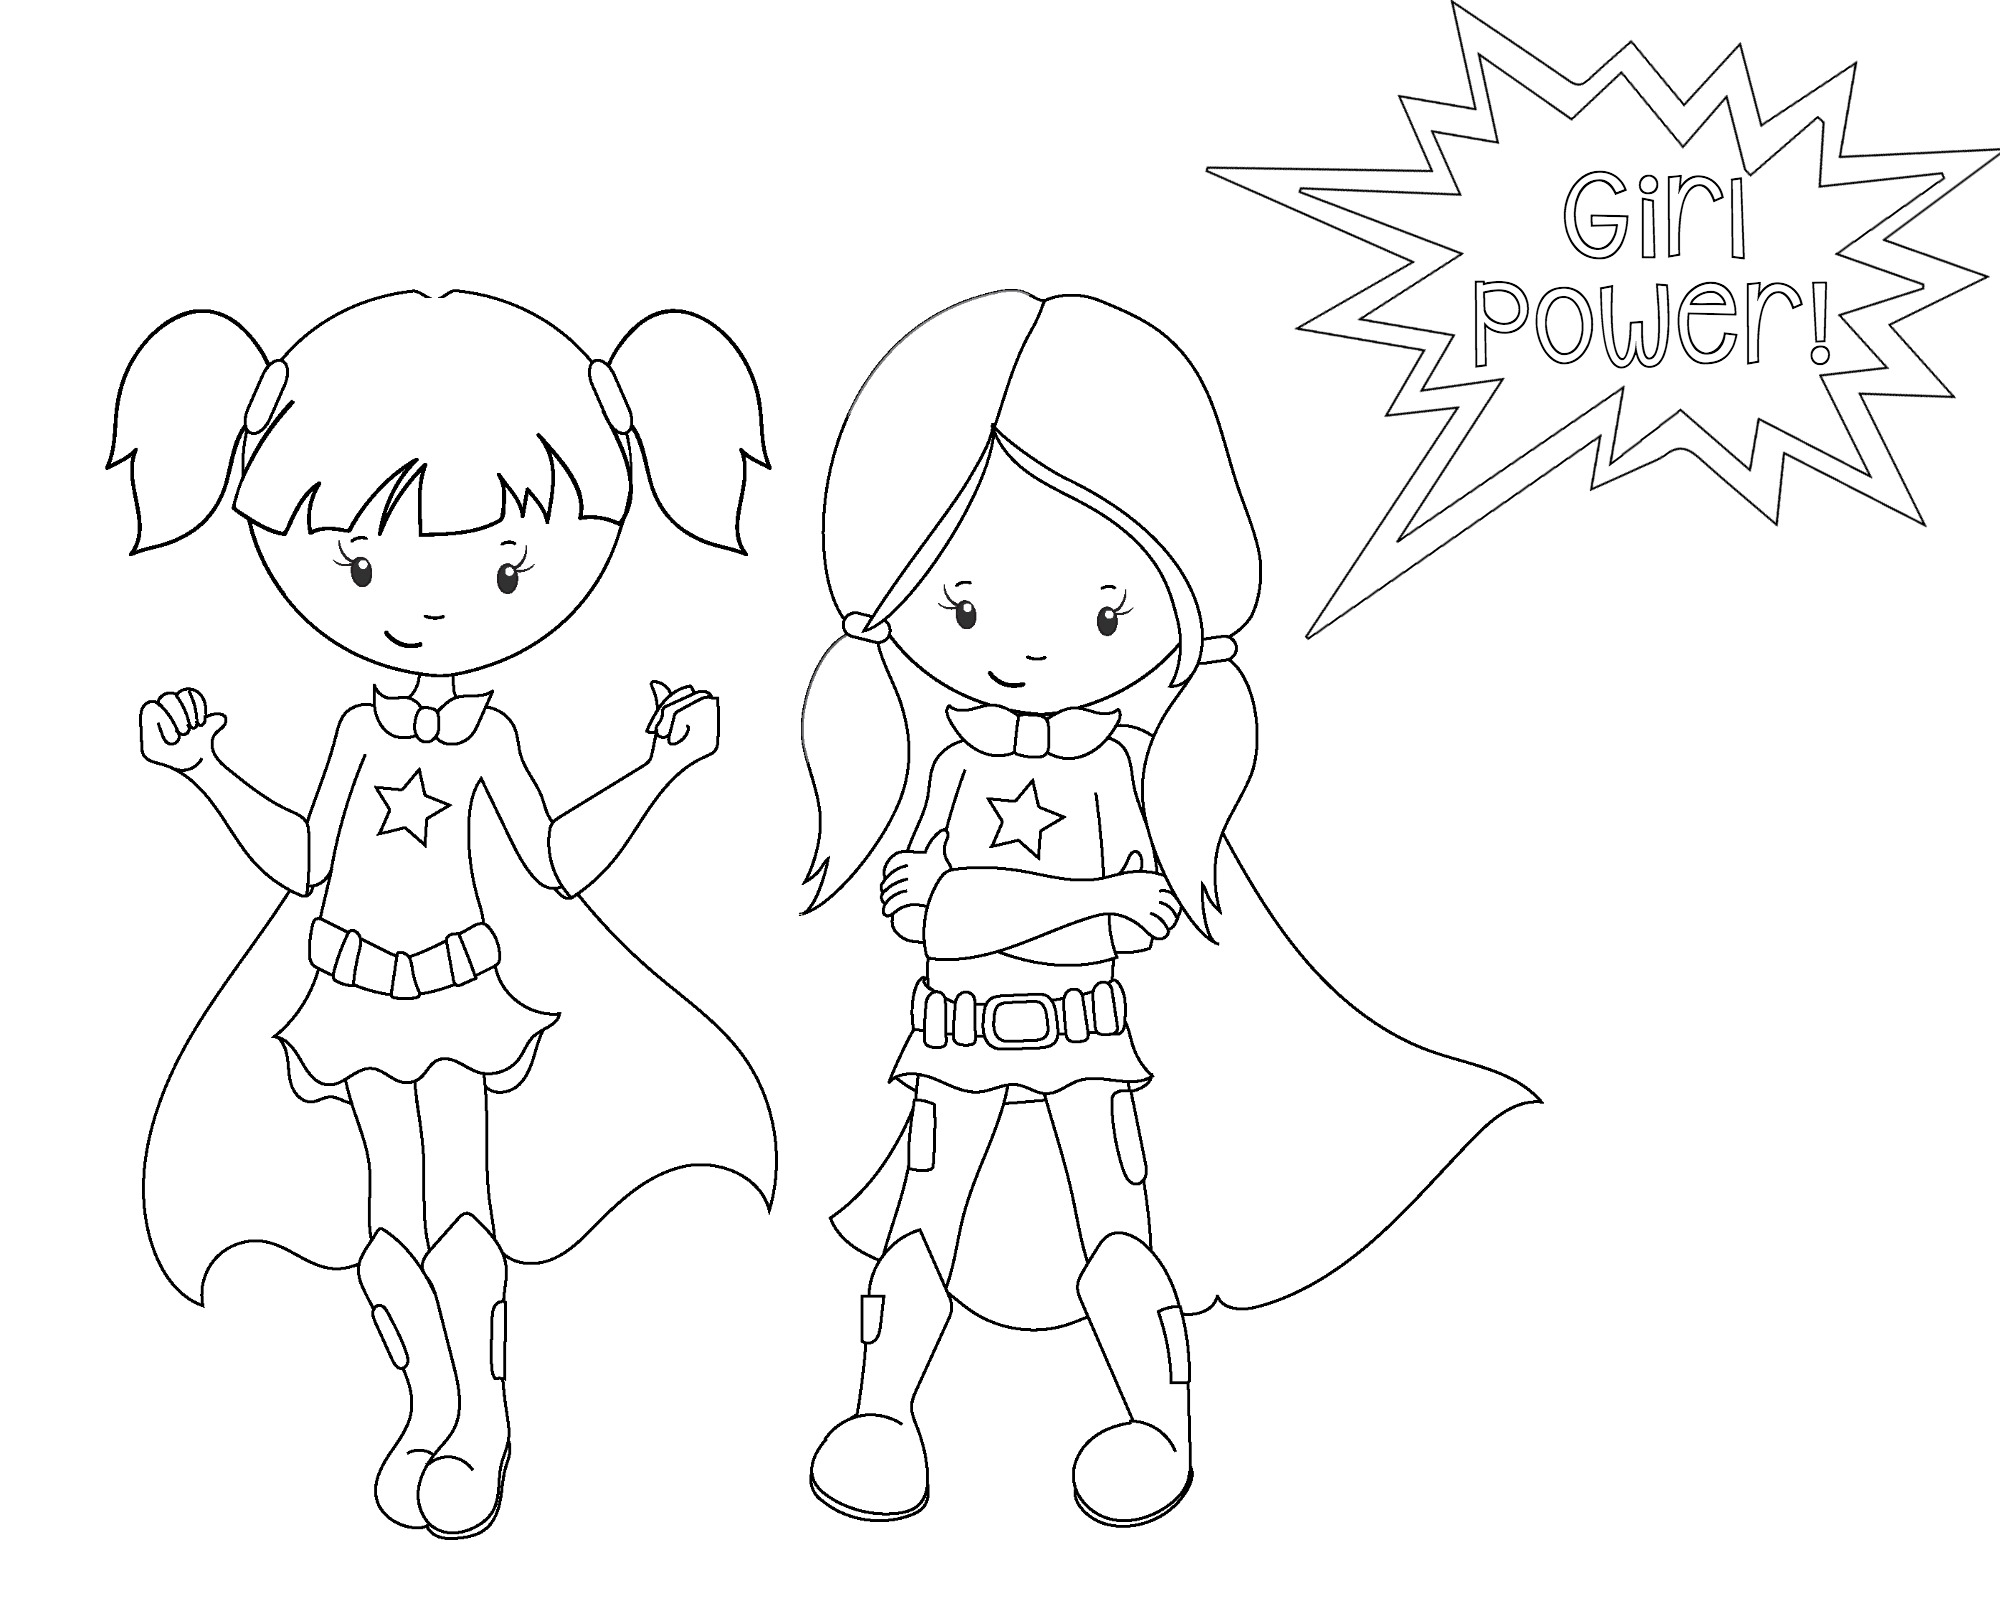 Superhero Coloring Pages - Superhero Coloring Pages Crazy Little Projects